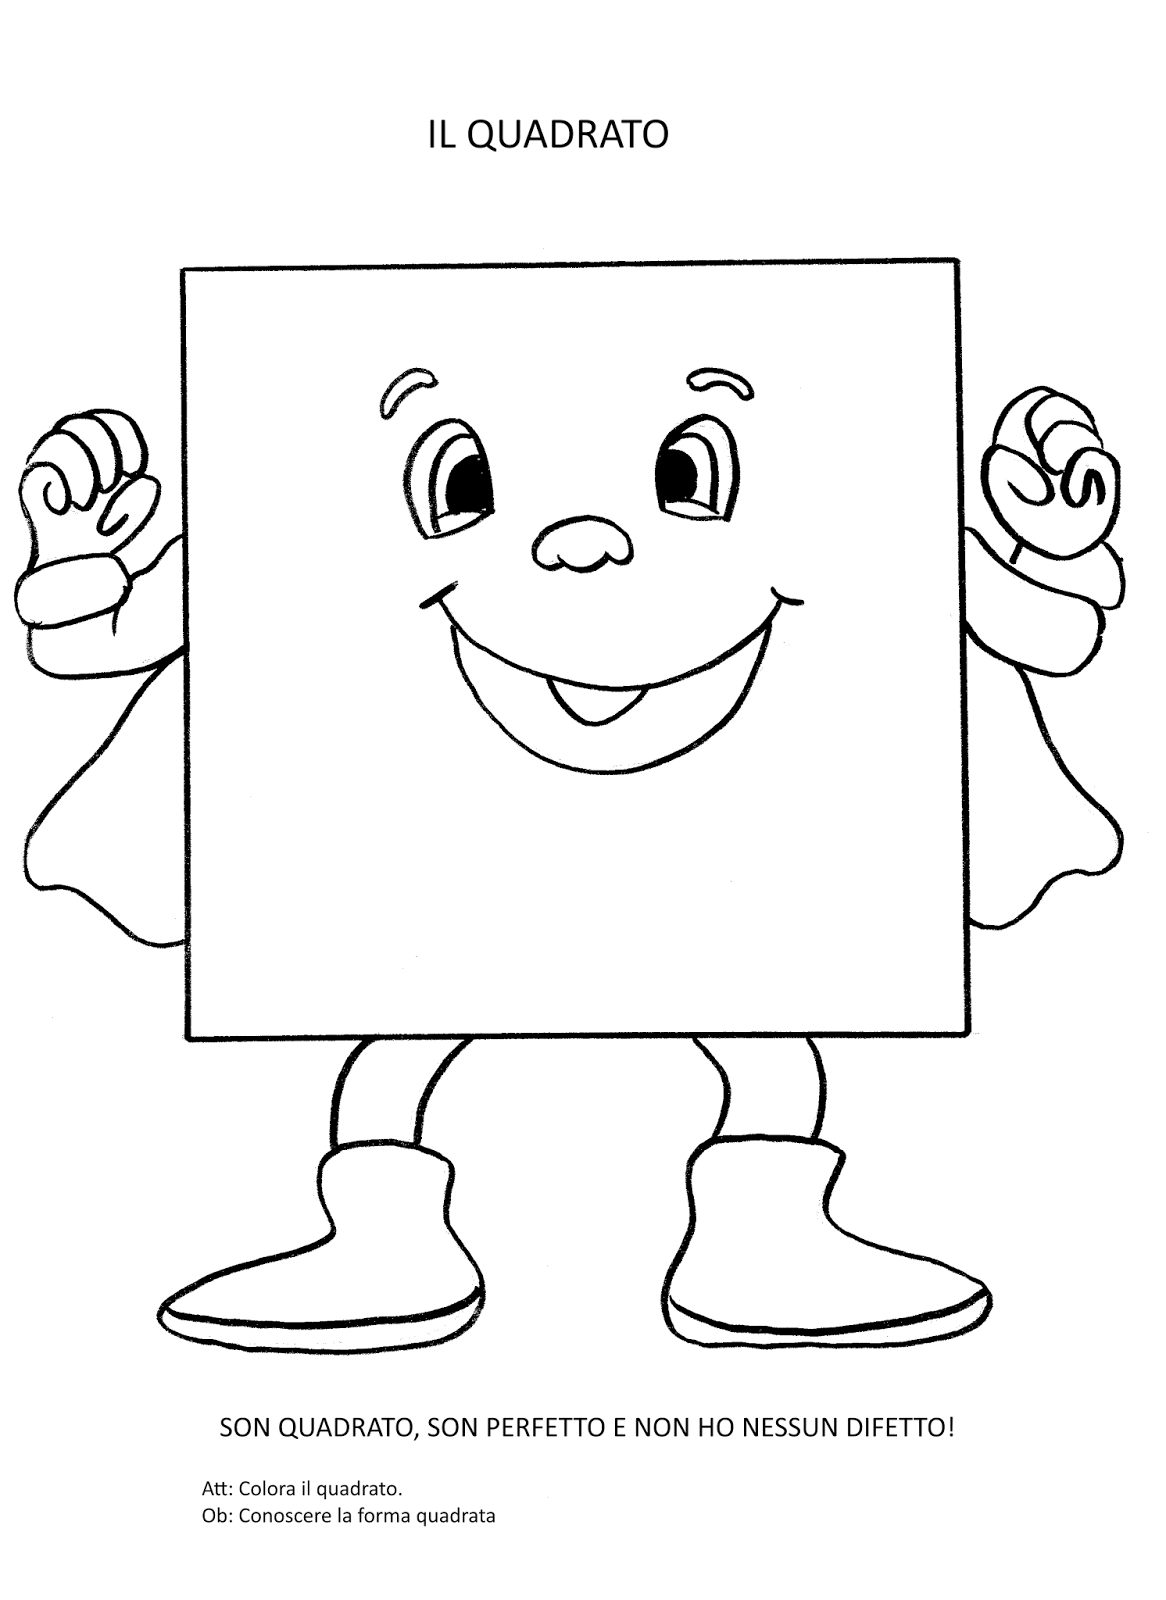 Super hero themed shaped character Preschool coloring